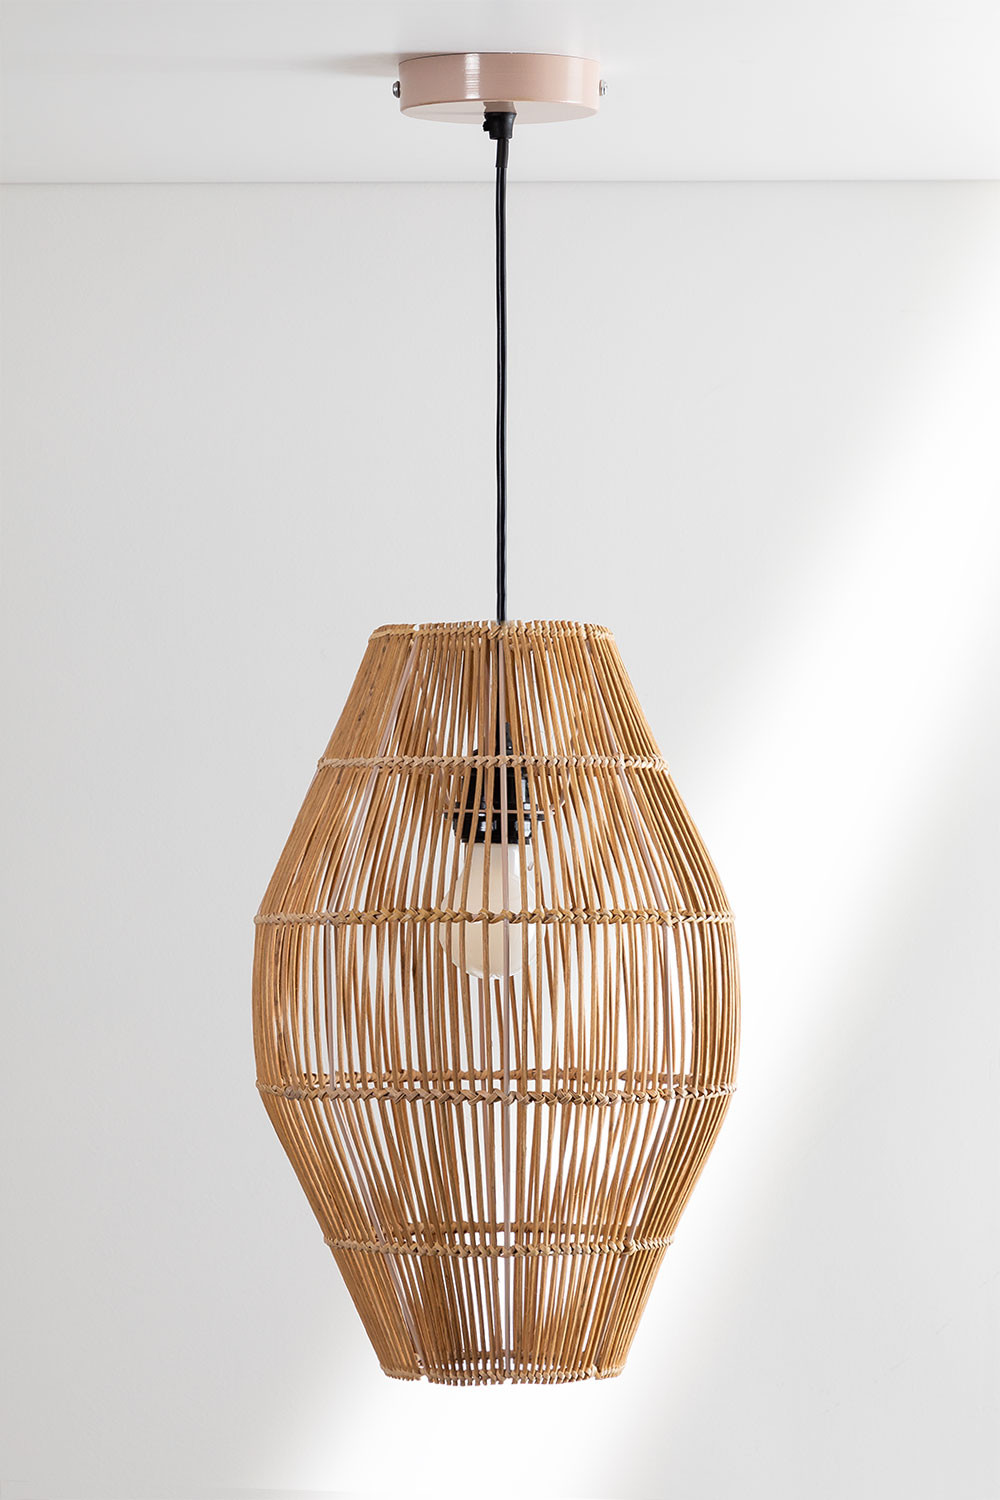 Khumo Bamboo Ceiling Lamp, gallery image 1